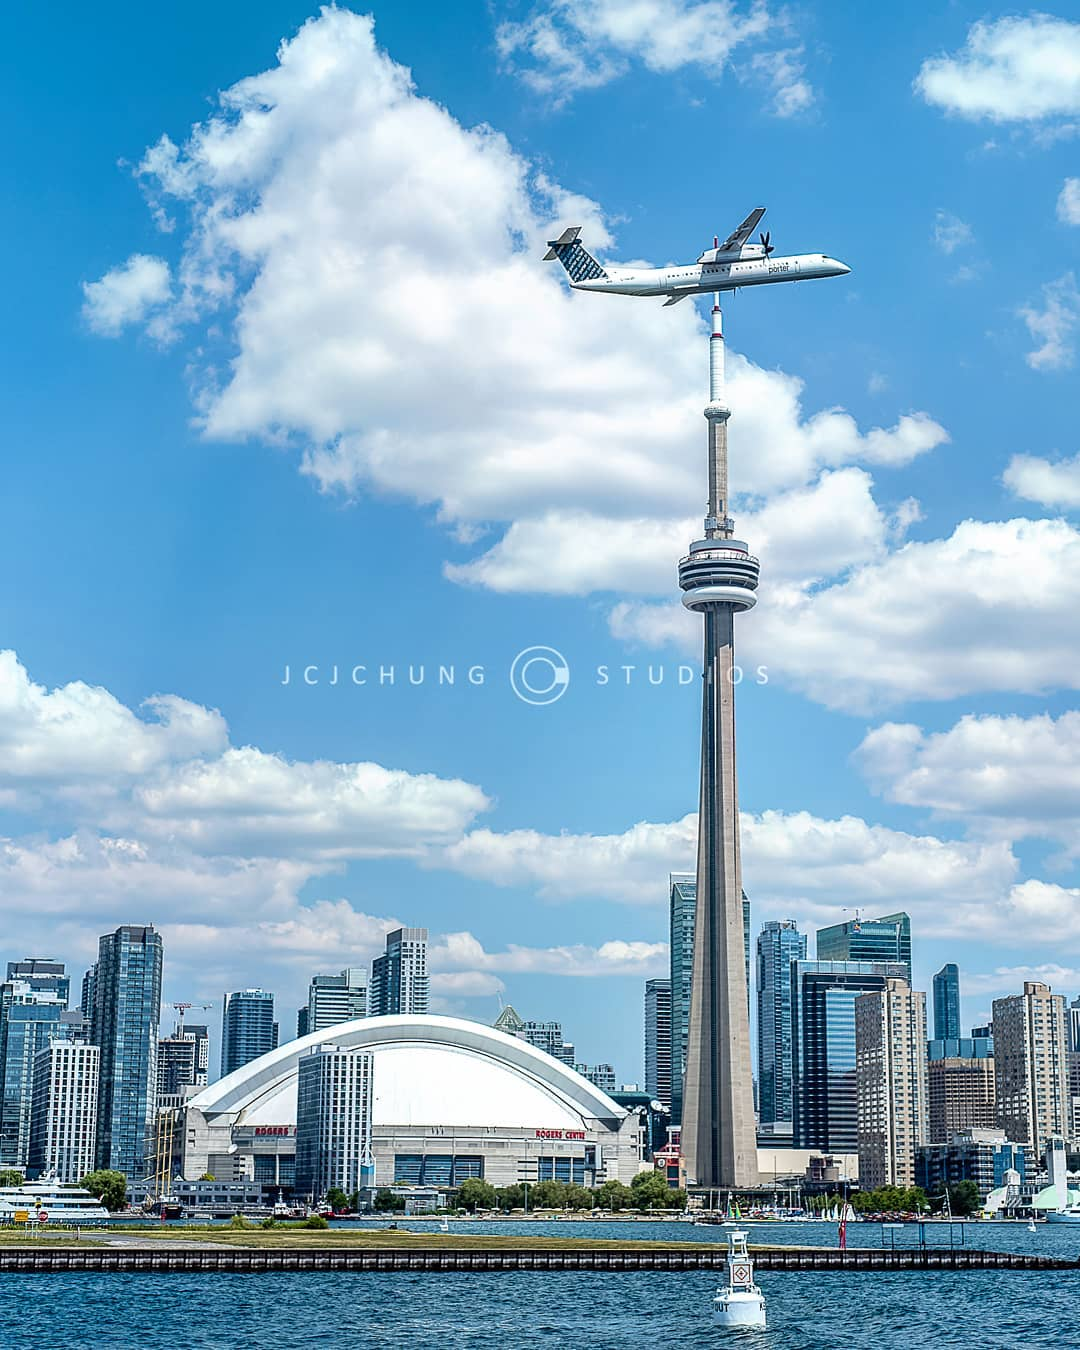 A Porter Airlines Bombardier Q400, with the Toronto skyline as a backdrop. Photo submitted by John Chung (Instagram user @jcjchung) using #skiesmag